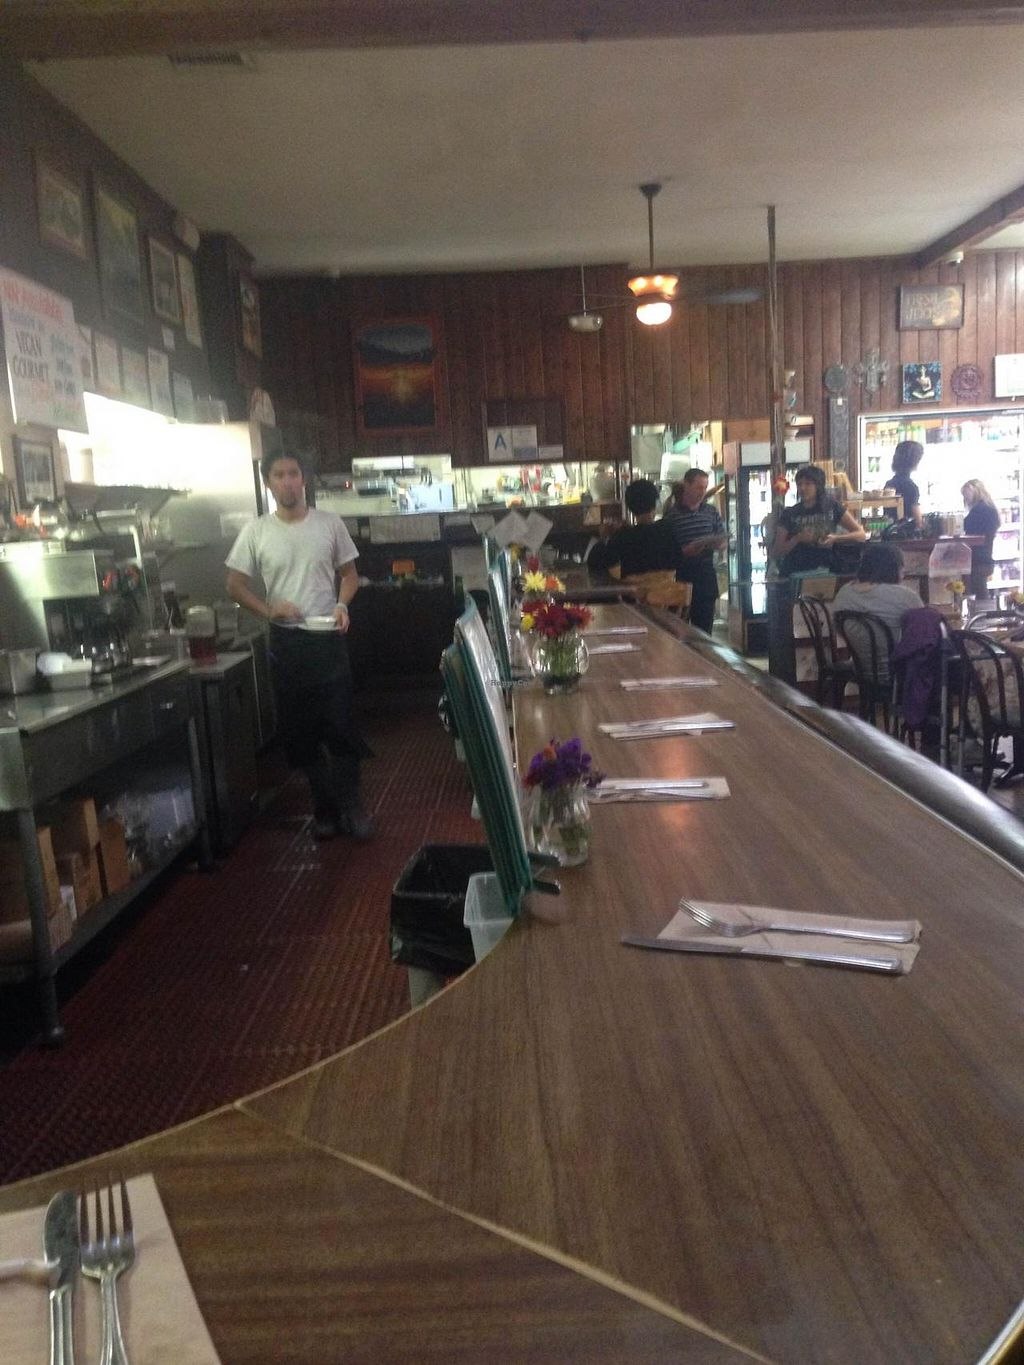 """Photo of Follow Your Heart Restaurant and Market  by <a href=""""/members/profile/Veg4ever"""">Veg4ever</a> <br/>I this this might be the original bar, This place has been around for quite a while. They are well-known for inventing Vegenaise <br/> January 24, 2015  - <a href='/contact/abuse/image/1609/91252'>Report</a>"""